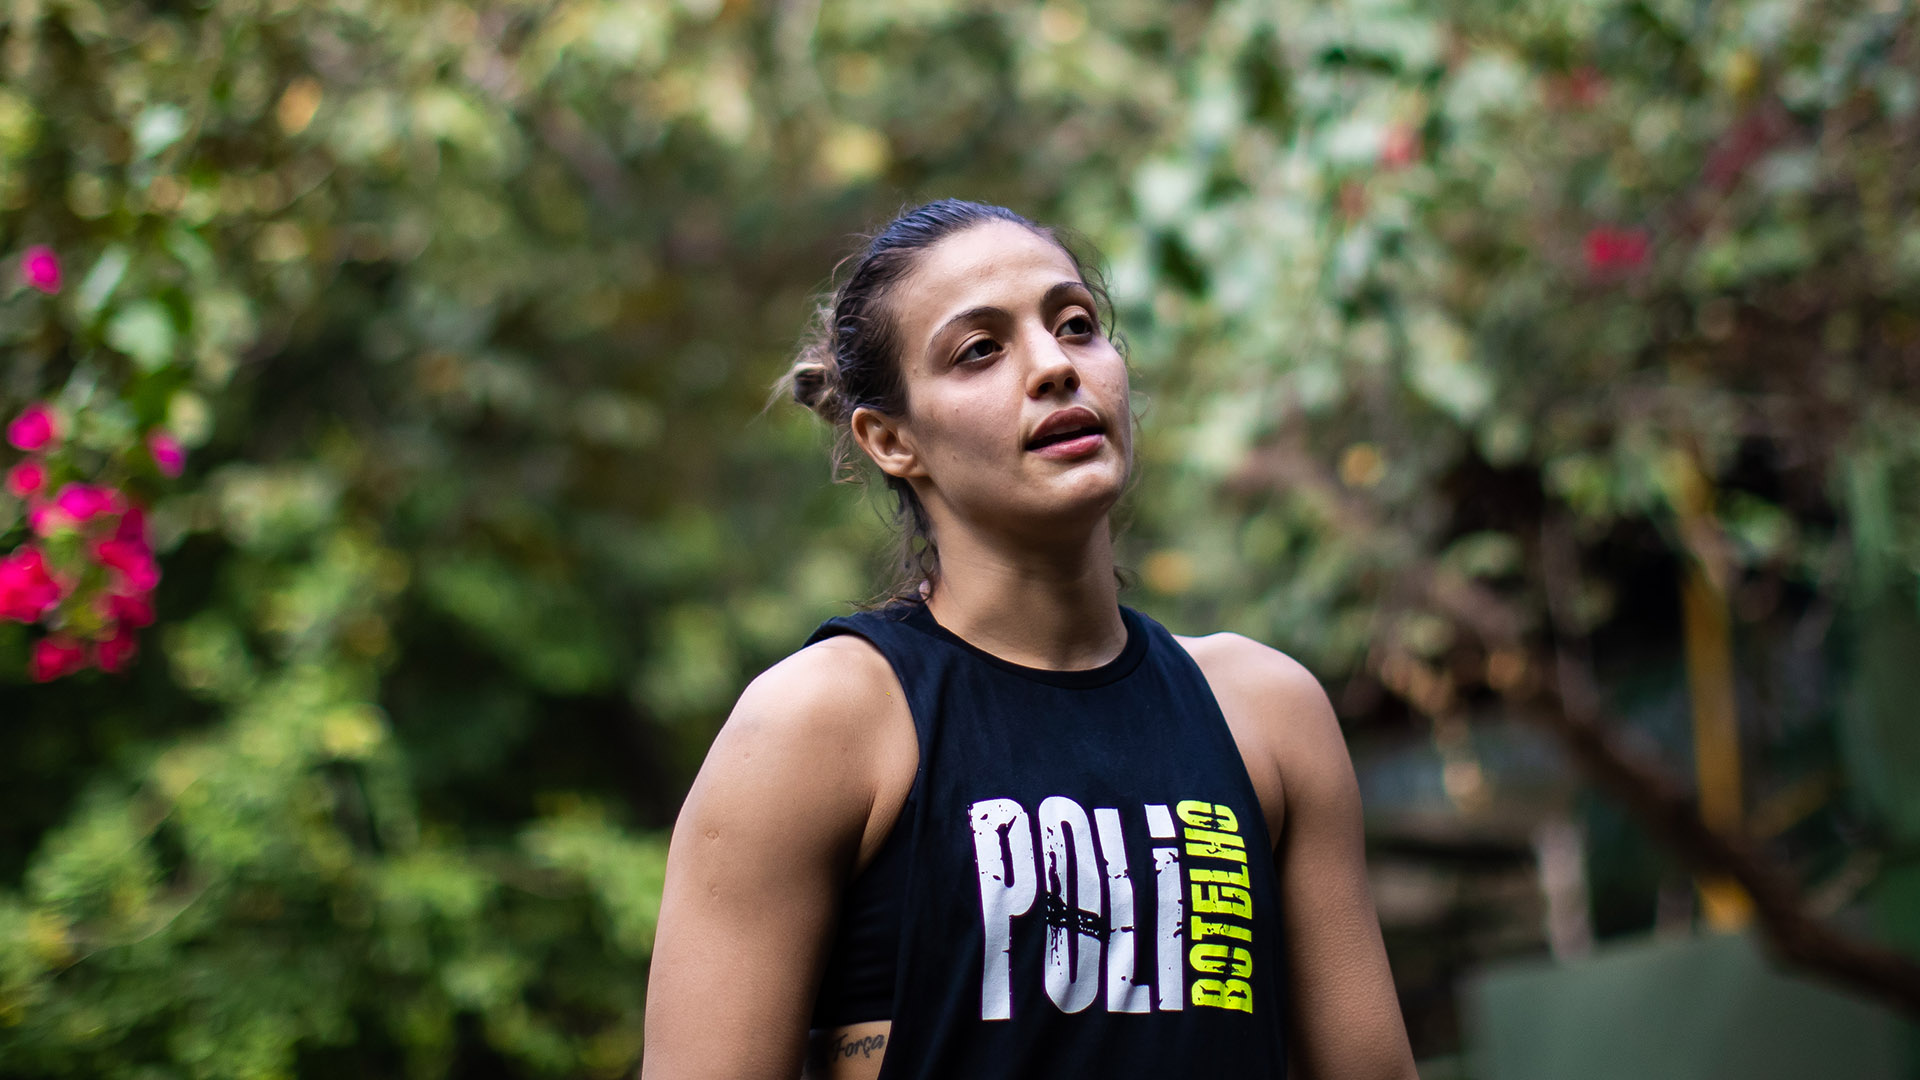 Brazilian MMA athlete Poliana Botelho poses for a photo after a training session amidst the coronavirus (COVID-19) pandemic at Arena Upper on August 19, 2020 in Rio de Janeiro, Brazil. UFC strawweight Poliana Botelho, 31, weighs 52 kilos and has a history of 10 fights, eight victories, six by knockouts, two by judge decision and only two defeats. Botelho currently holds the record for the fastest victory. (Photo by Buda Mendes/Getty Images)